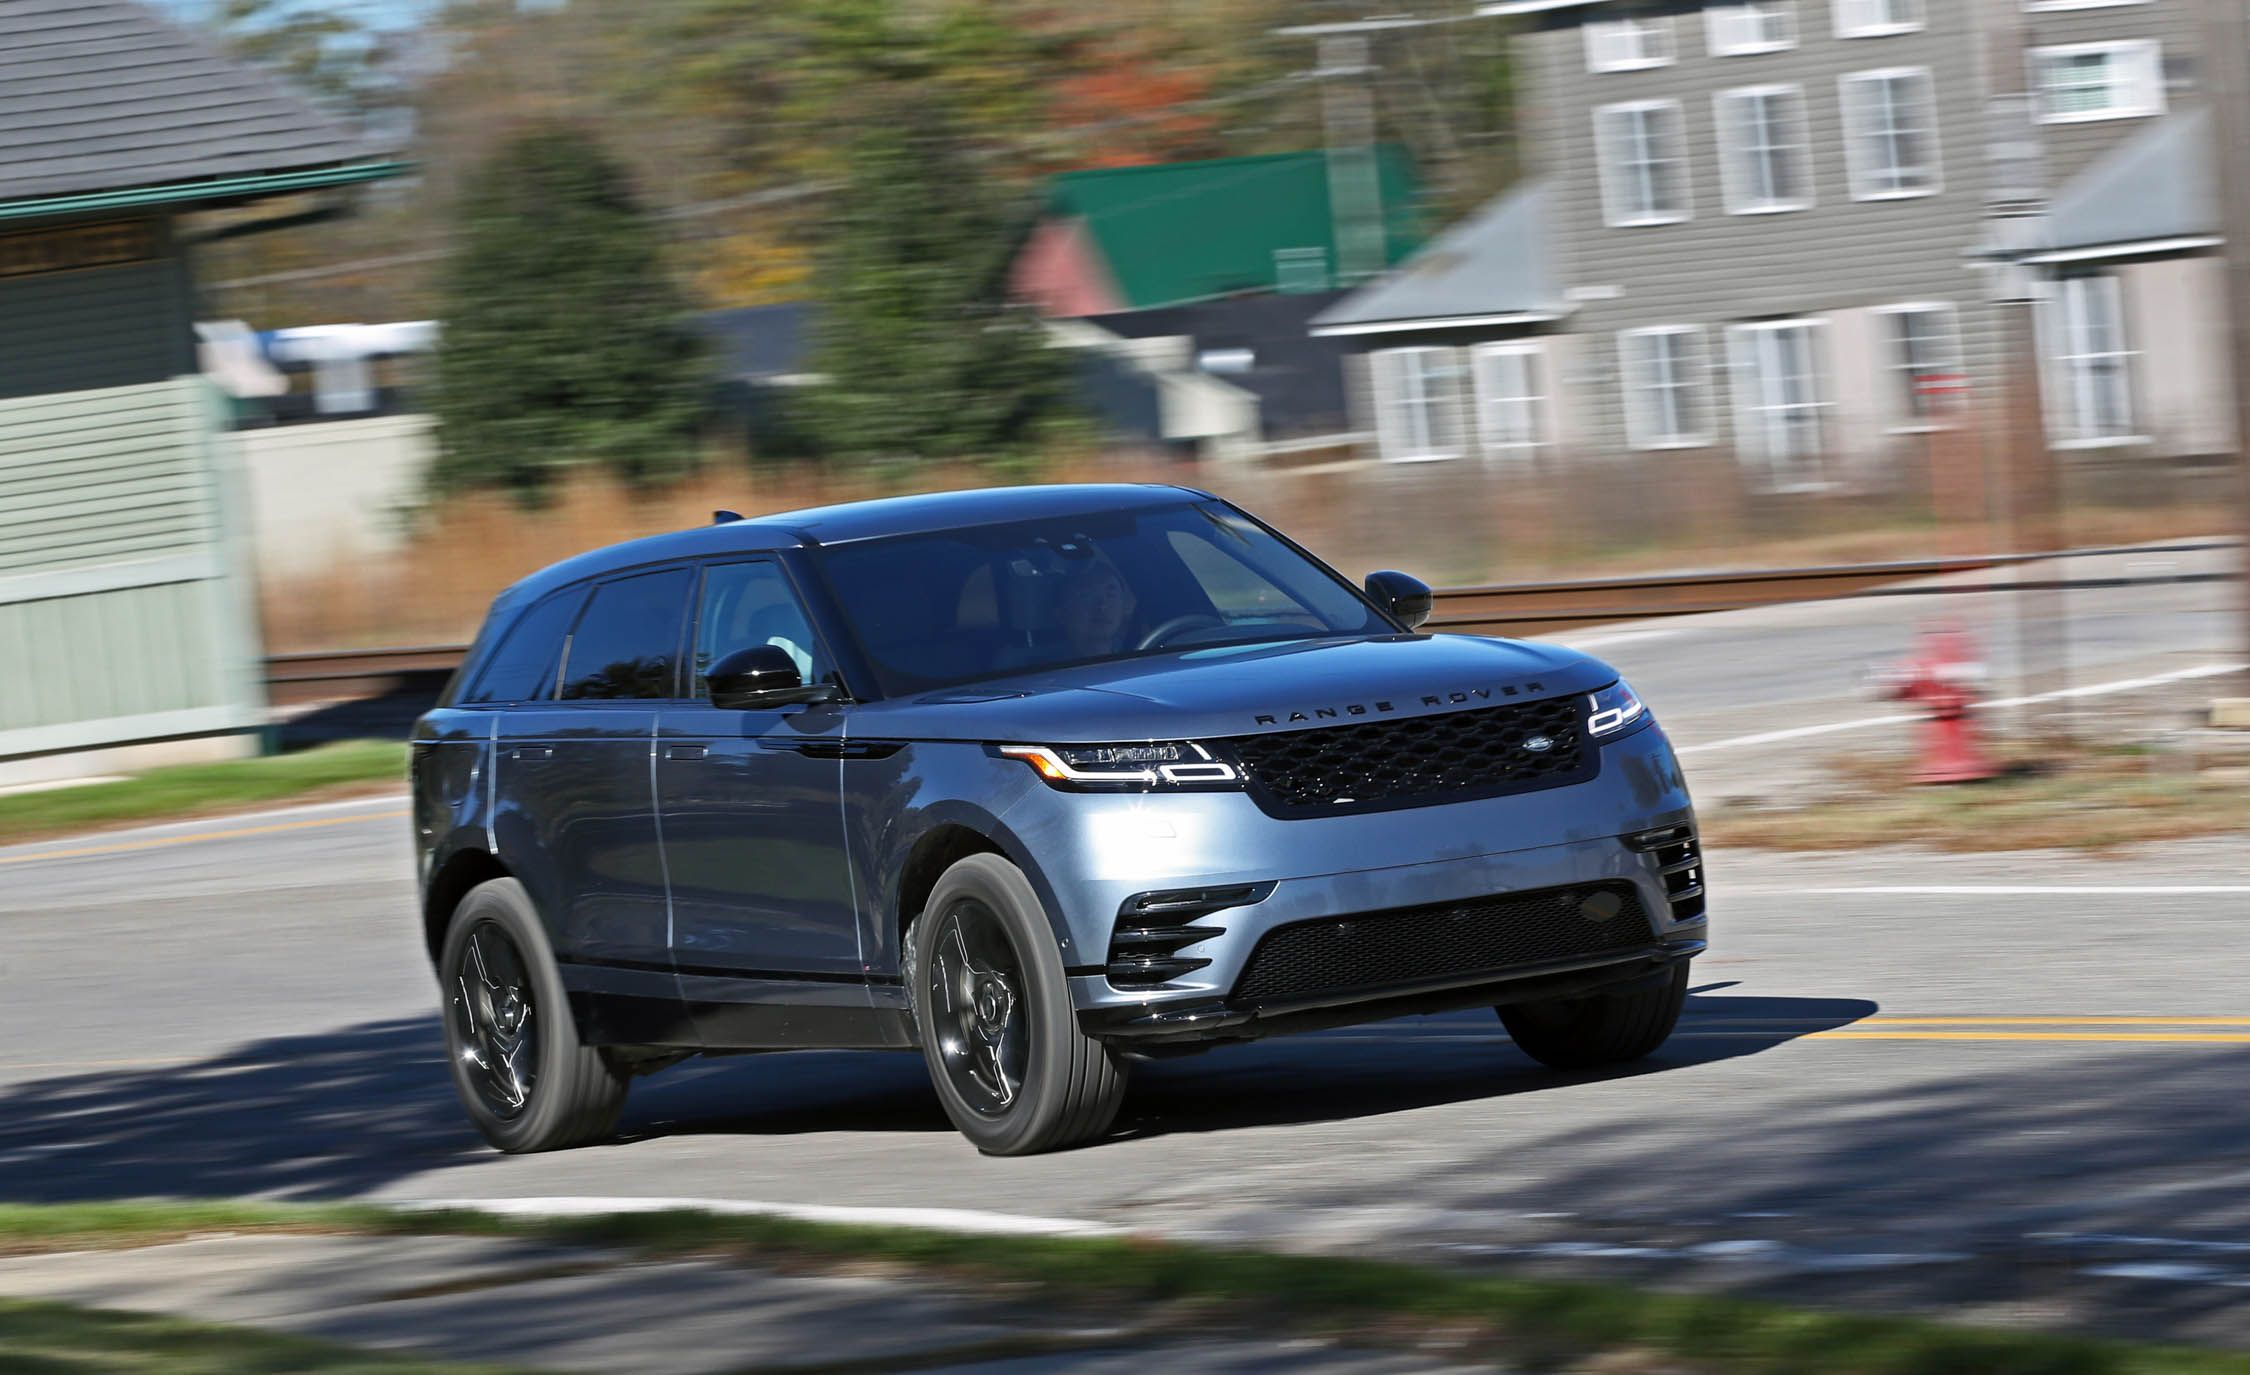 2018 range rover velar safety and driver assistance. Black Bedroom Furniture Sets. Home Design Ideas